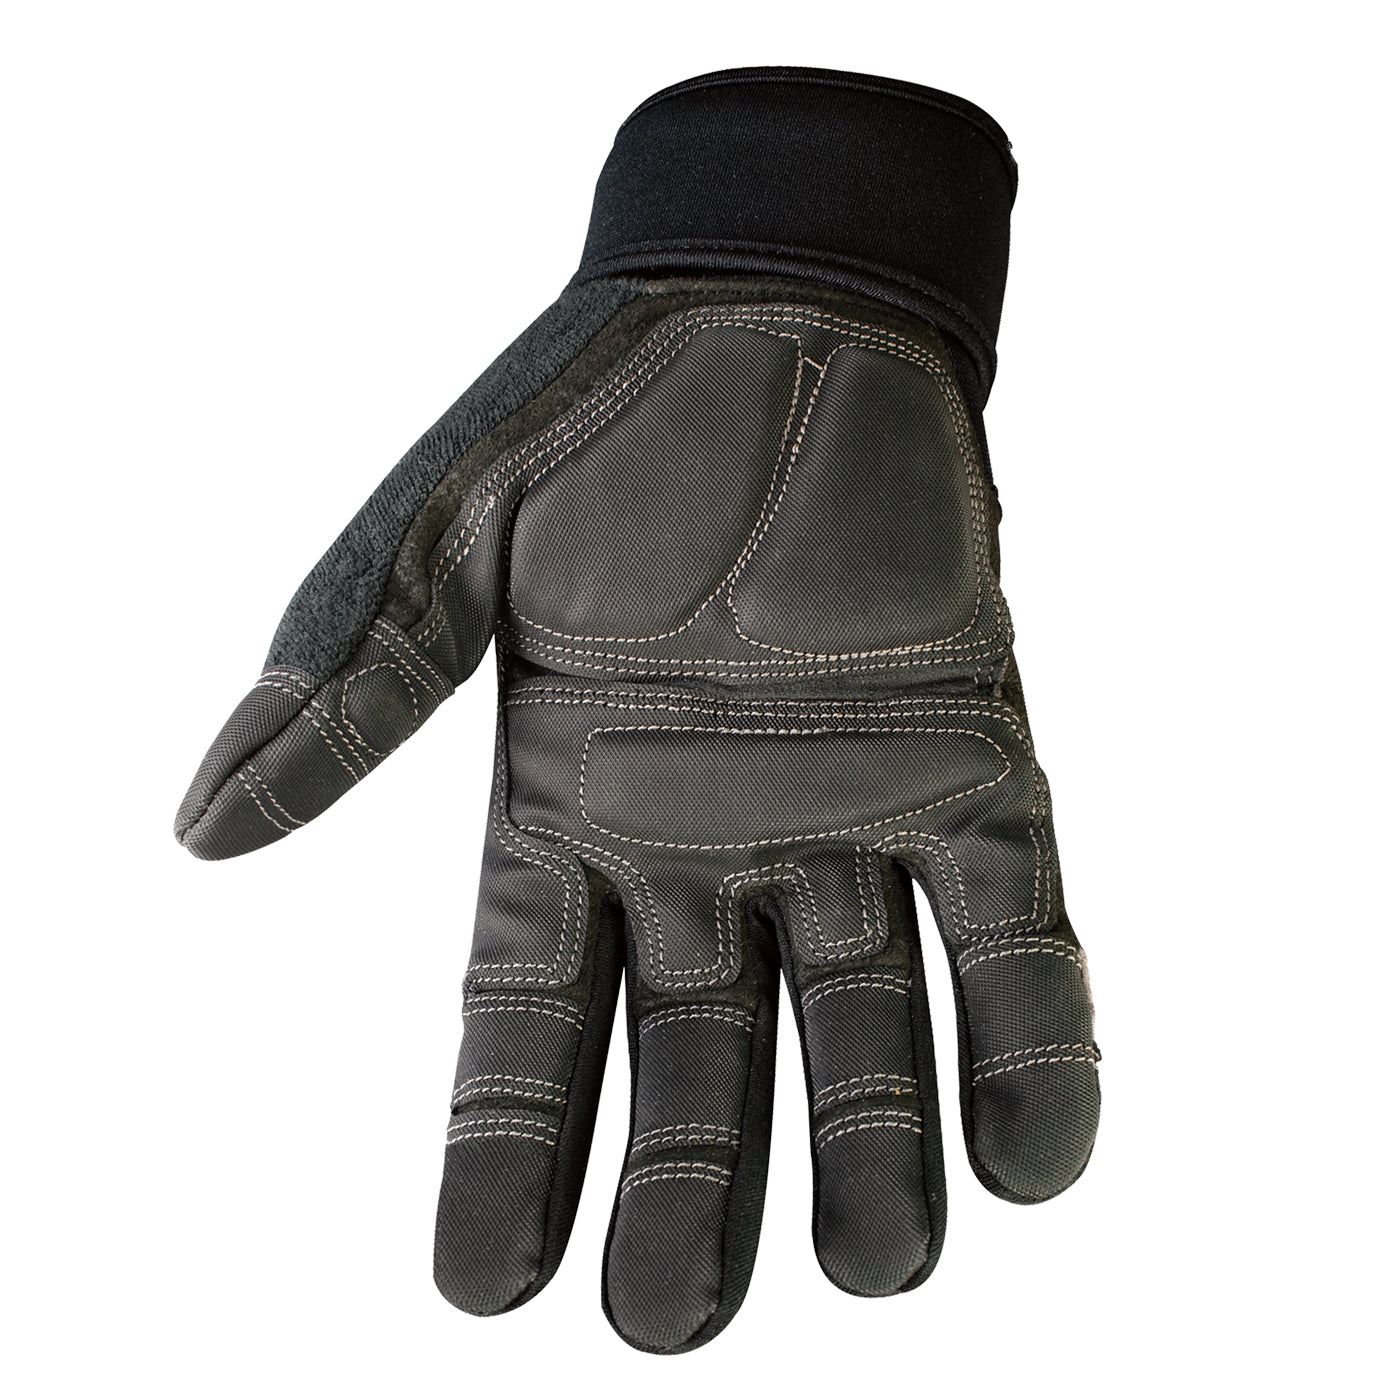 03-3200-78 Youngstown Anti-Vibe XT Glove - Main image